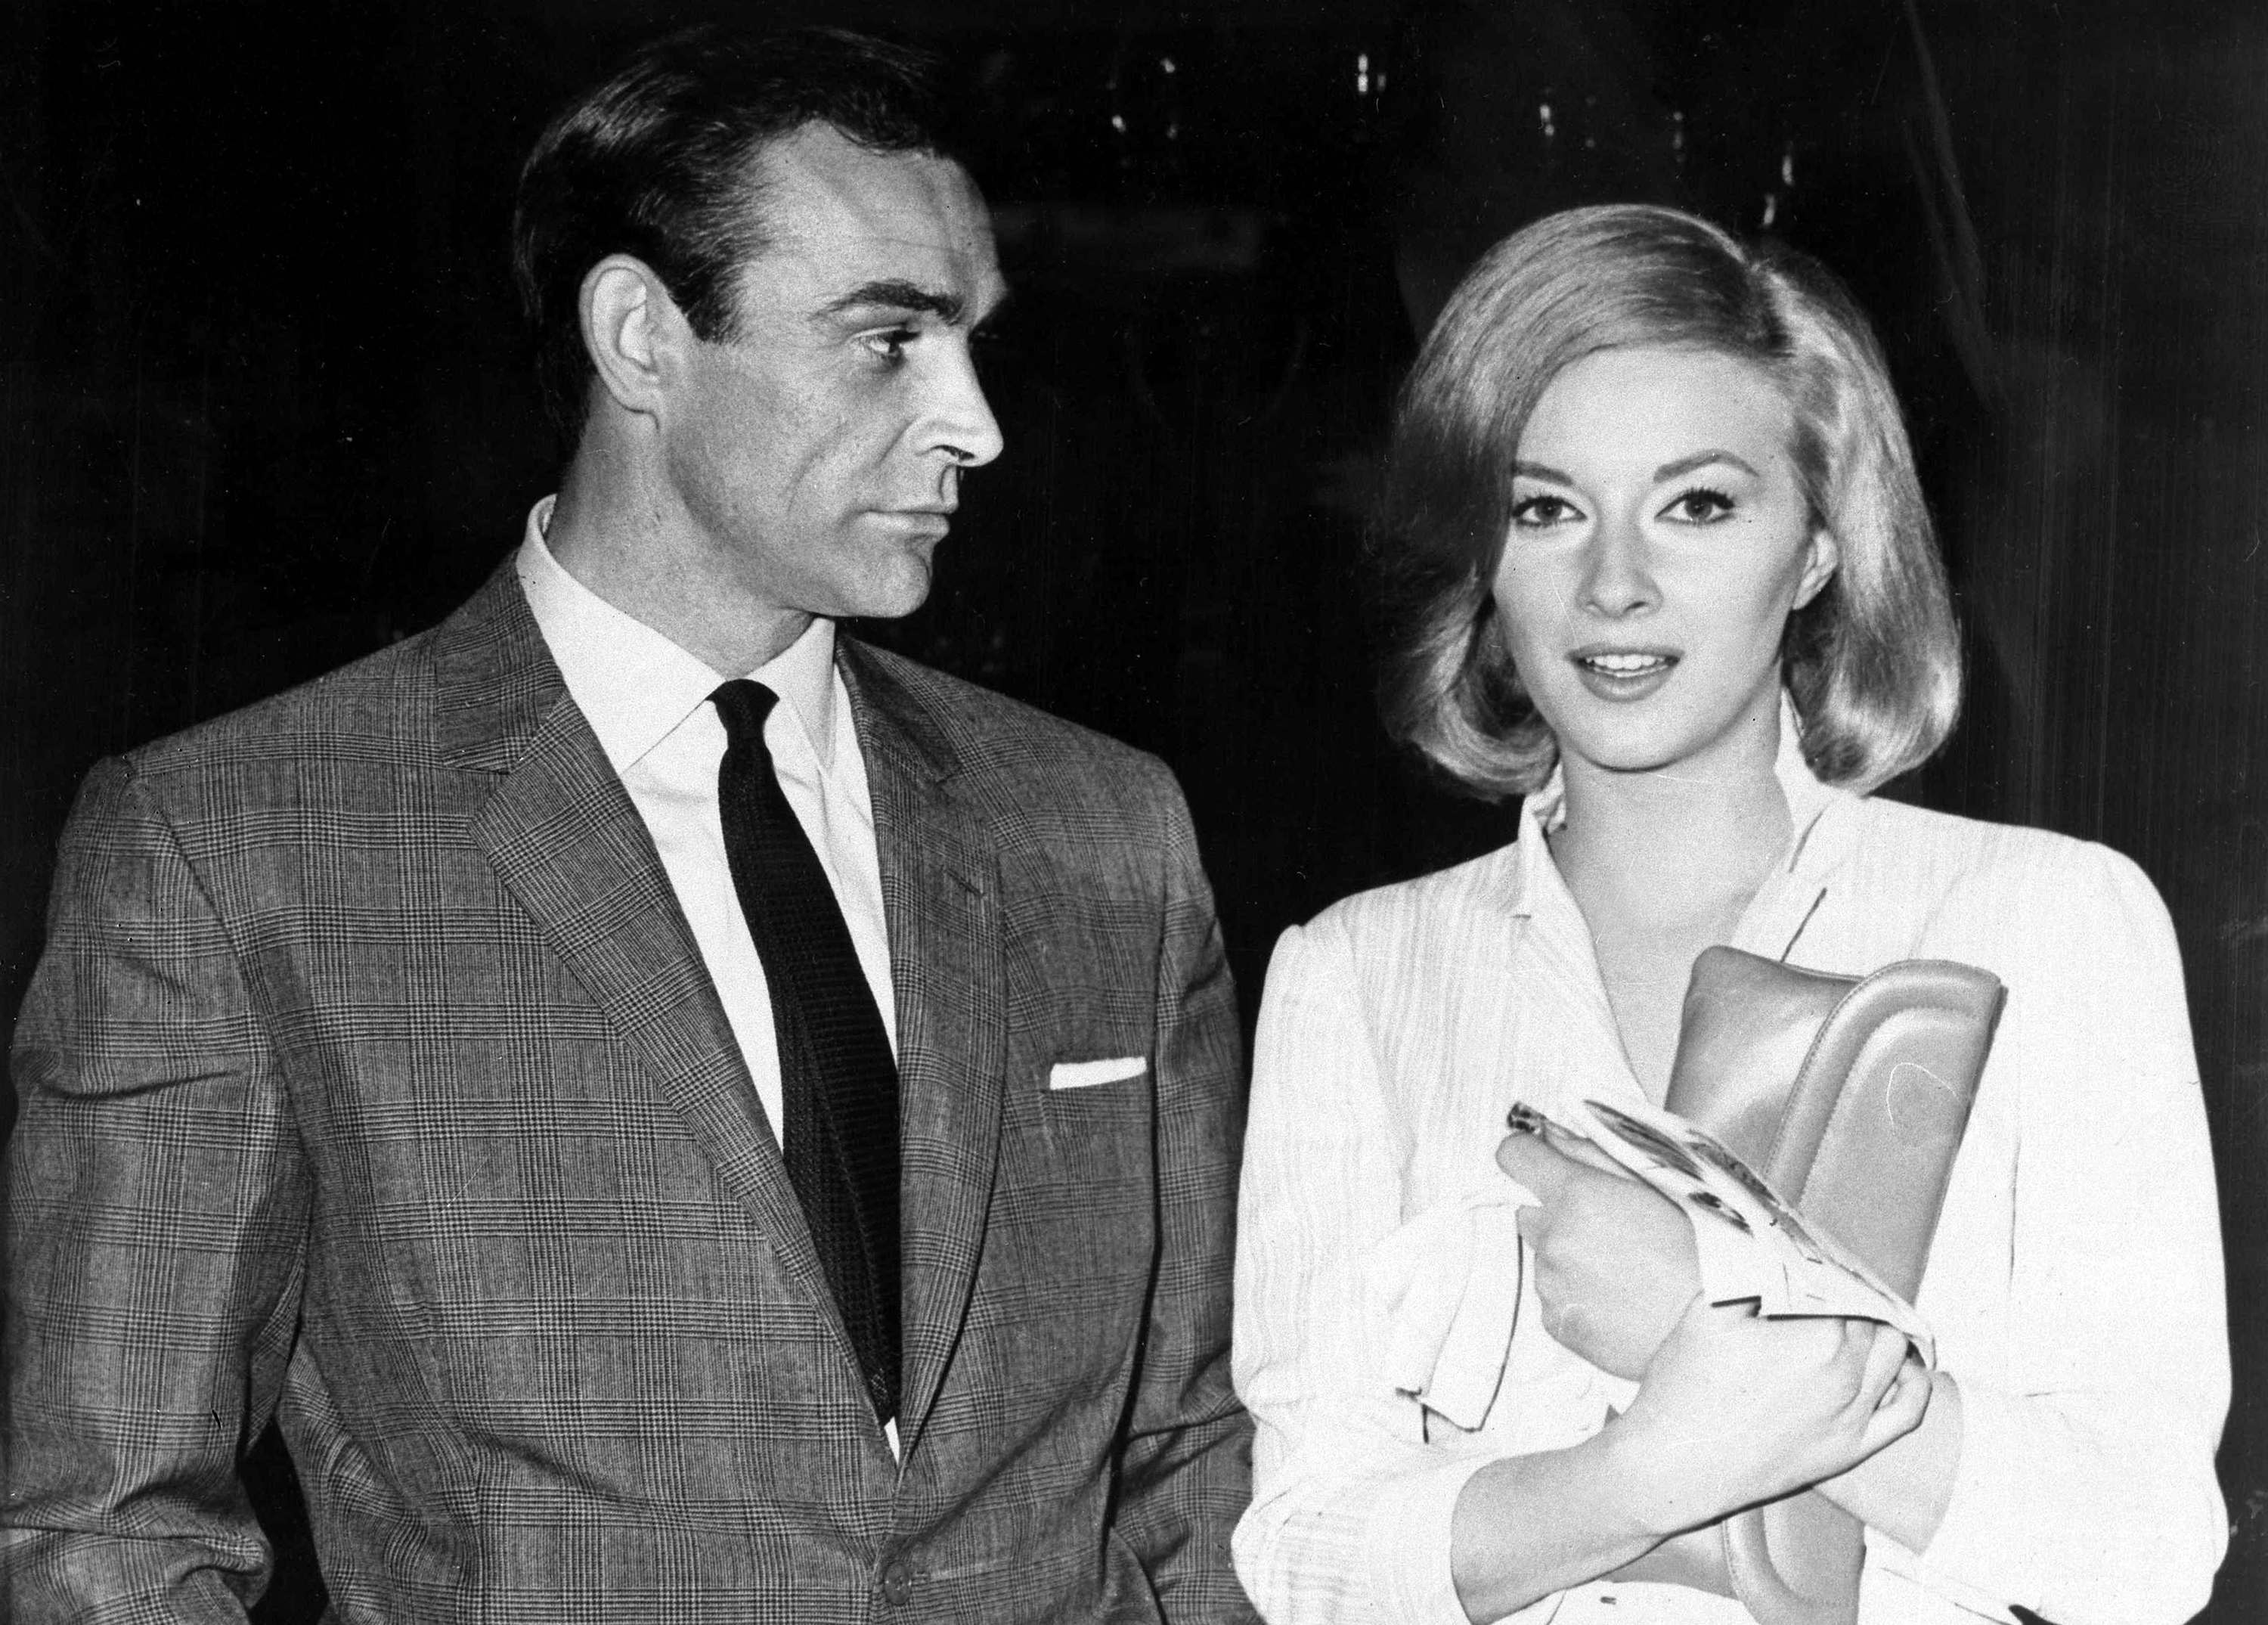 British actor Sean Connery, left, and Italian actress Daniela Bianchi are seen in Istanbul on Apr. 25, 1963. They are in Turkey filming 'From Russia with Love' in which Connery plays the part of MI6 agent James Bond and Bianchi plays the part of Tatiana Romanova. (AP Photo)